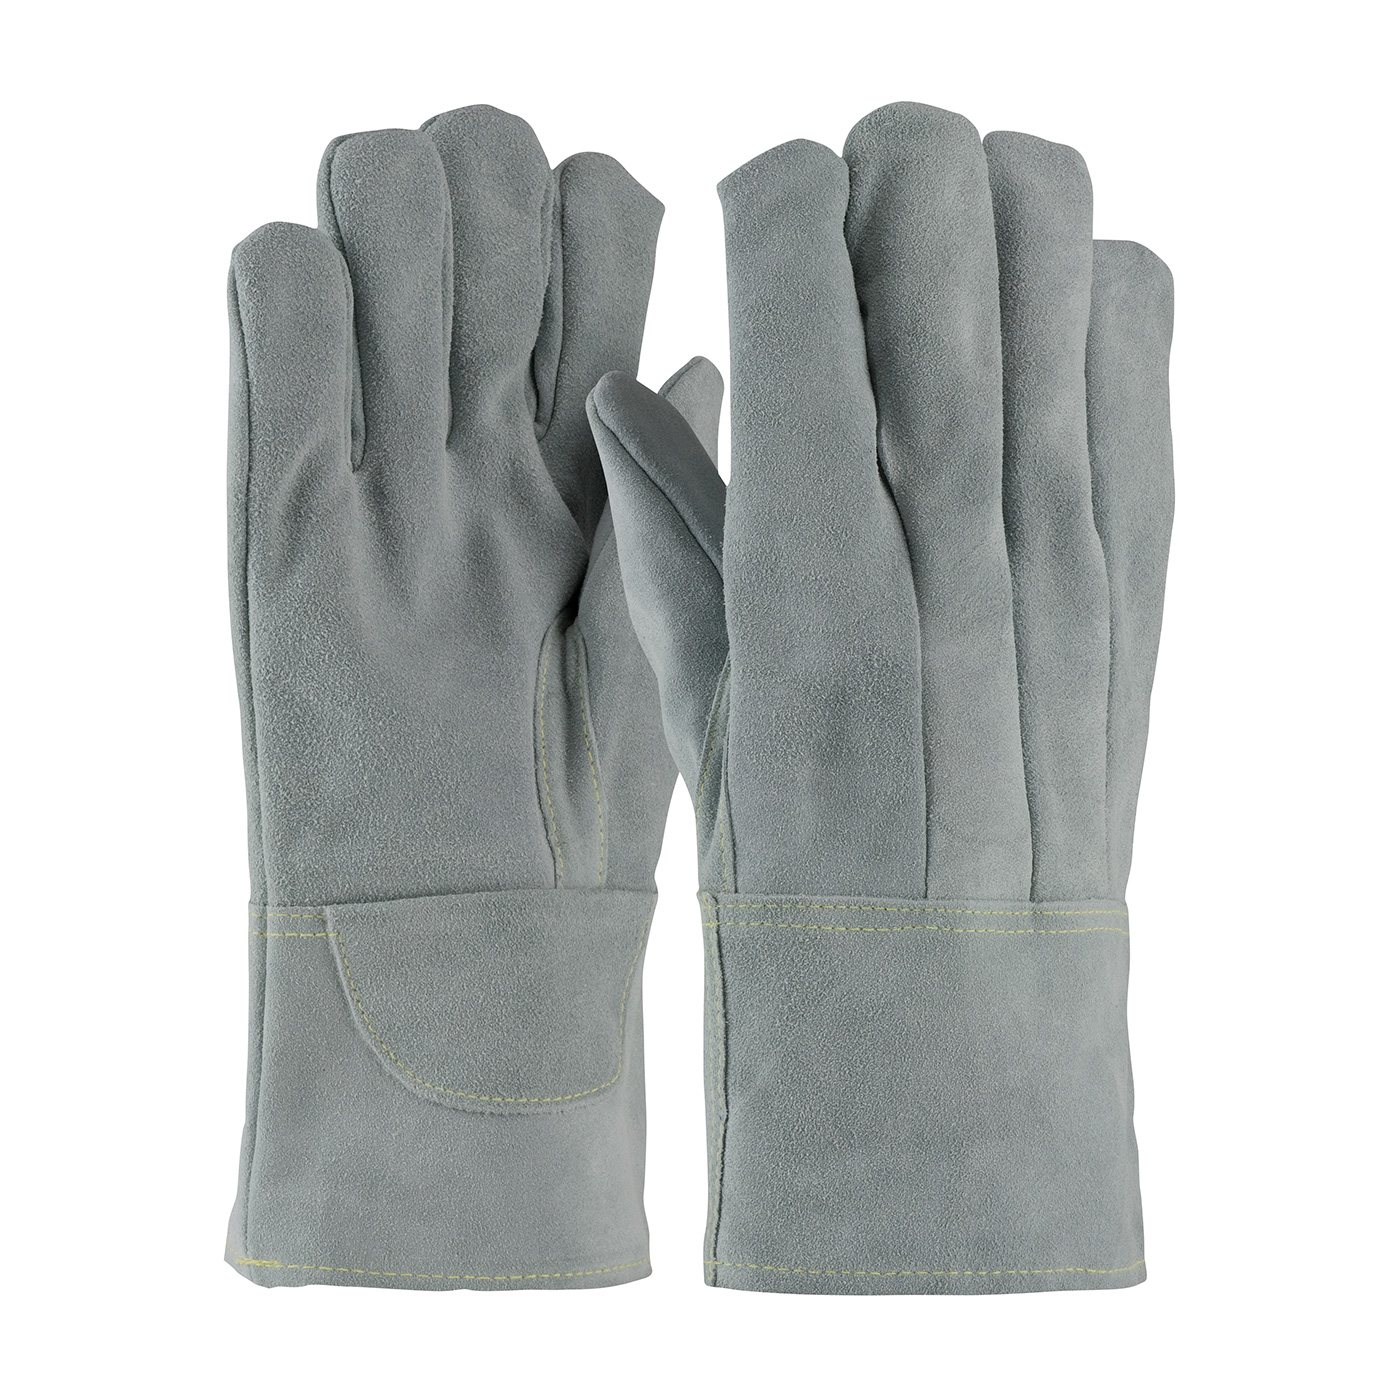 #74-SC7104 PIP® Heavy Side Split Cowhide Foundry Glove with Leather Gauntlet Cuffs, Wool Liner and Kevlar® Stitching